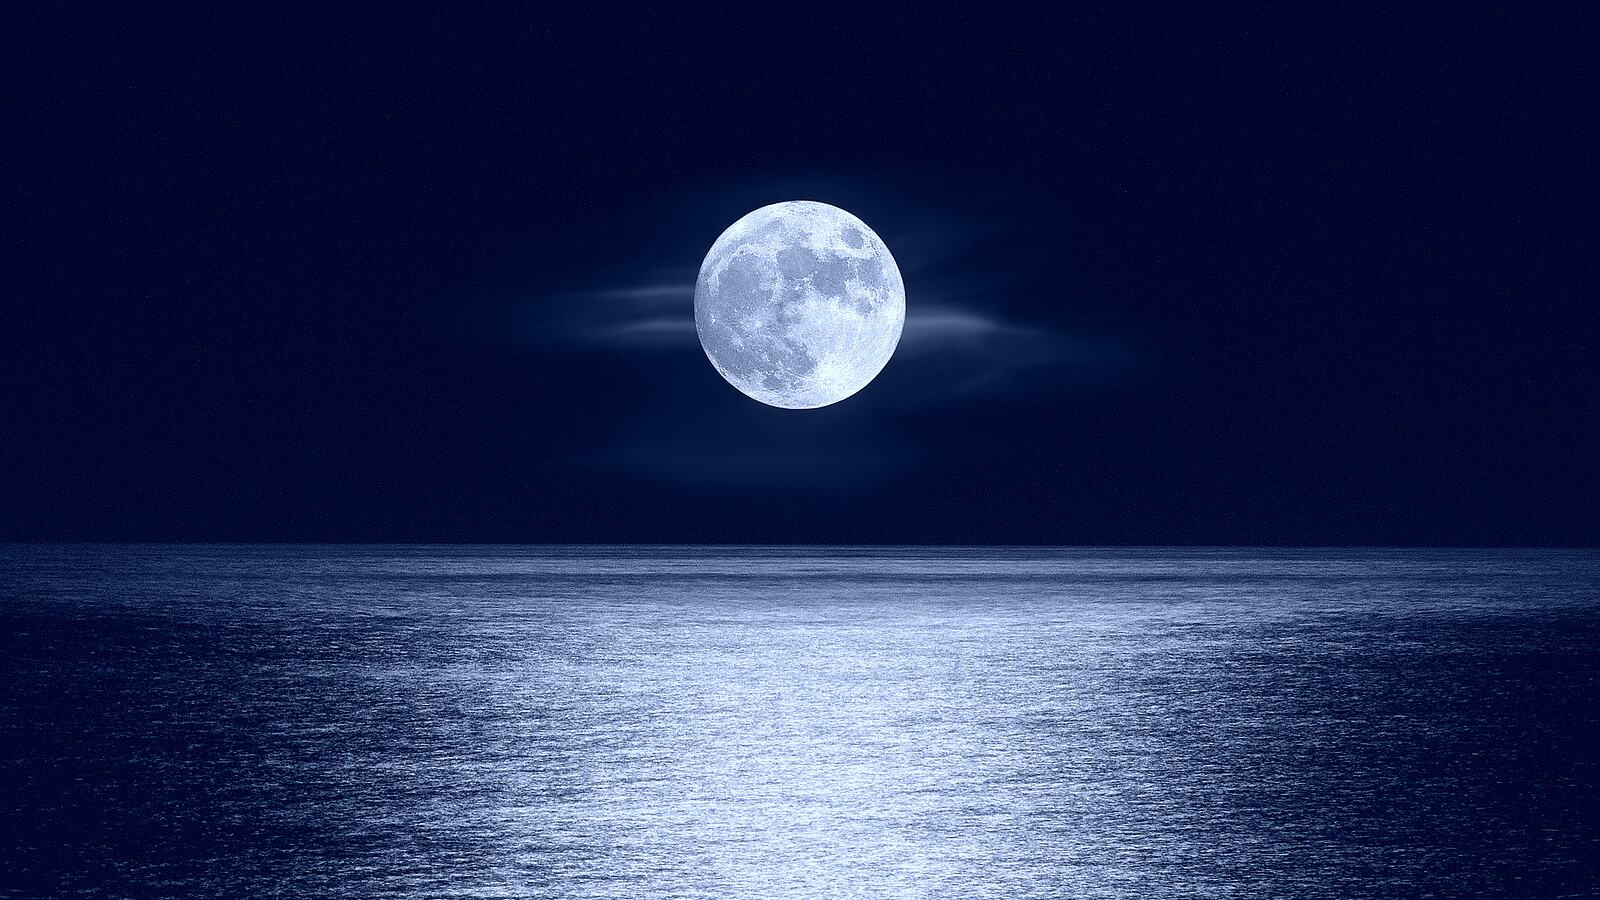 Image of the moon above water